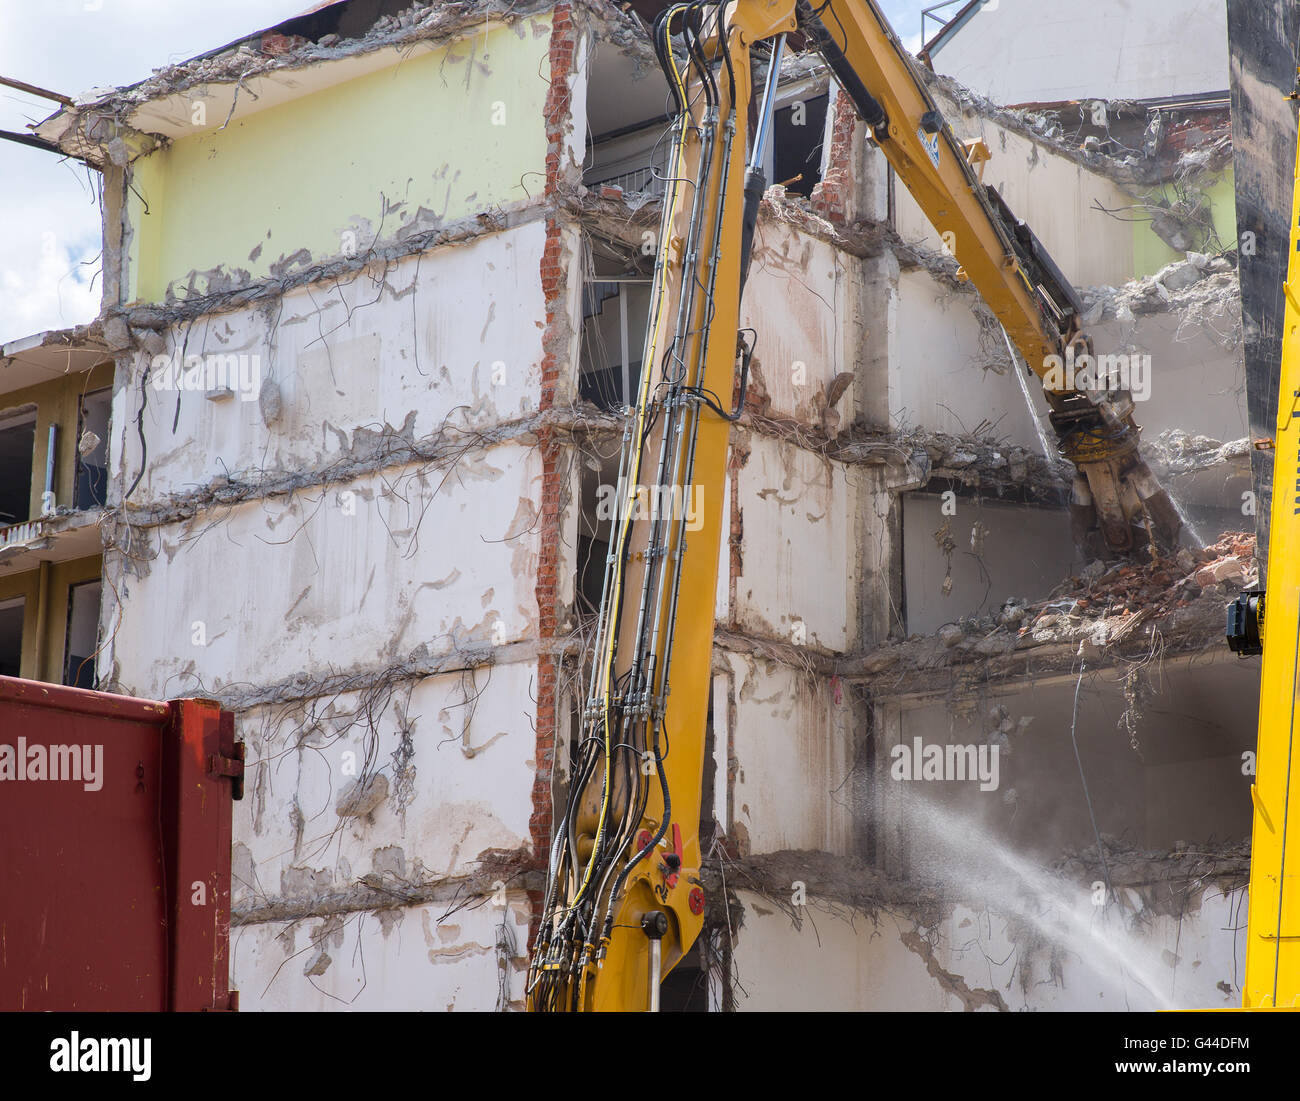 Dismantling of housecrashing by machinery - Stock Image